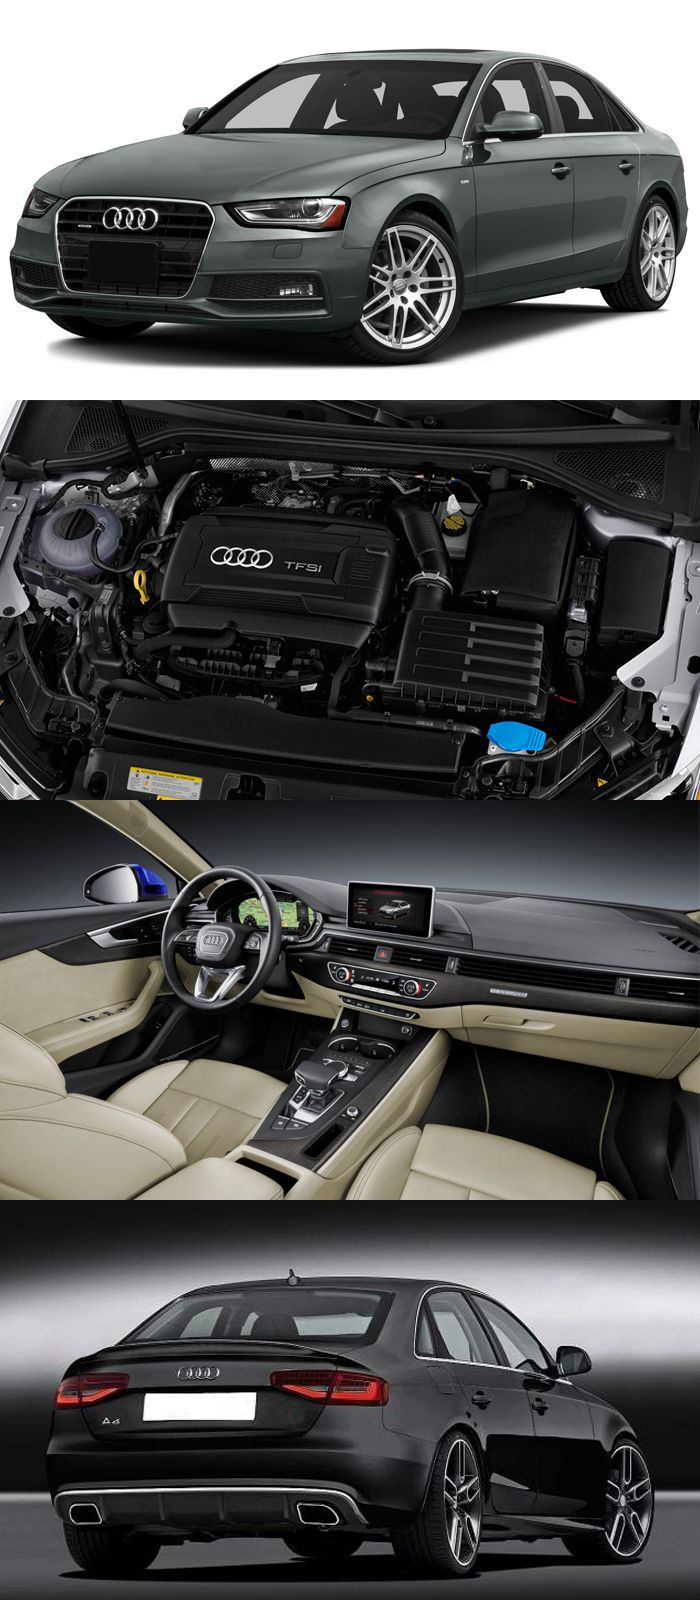 Audi a4 2016 more efficient worthwhile and comfy what you say get